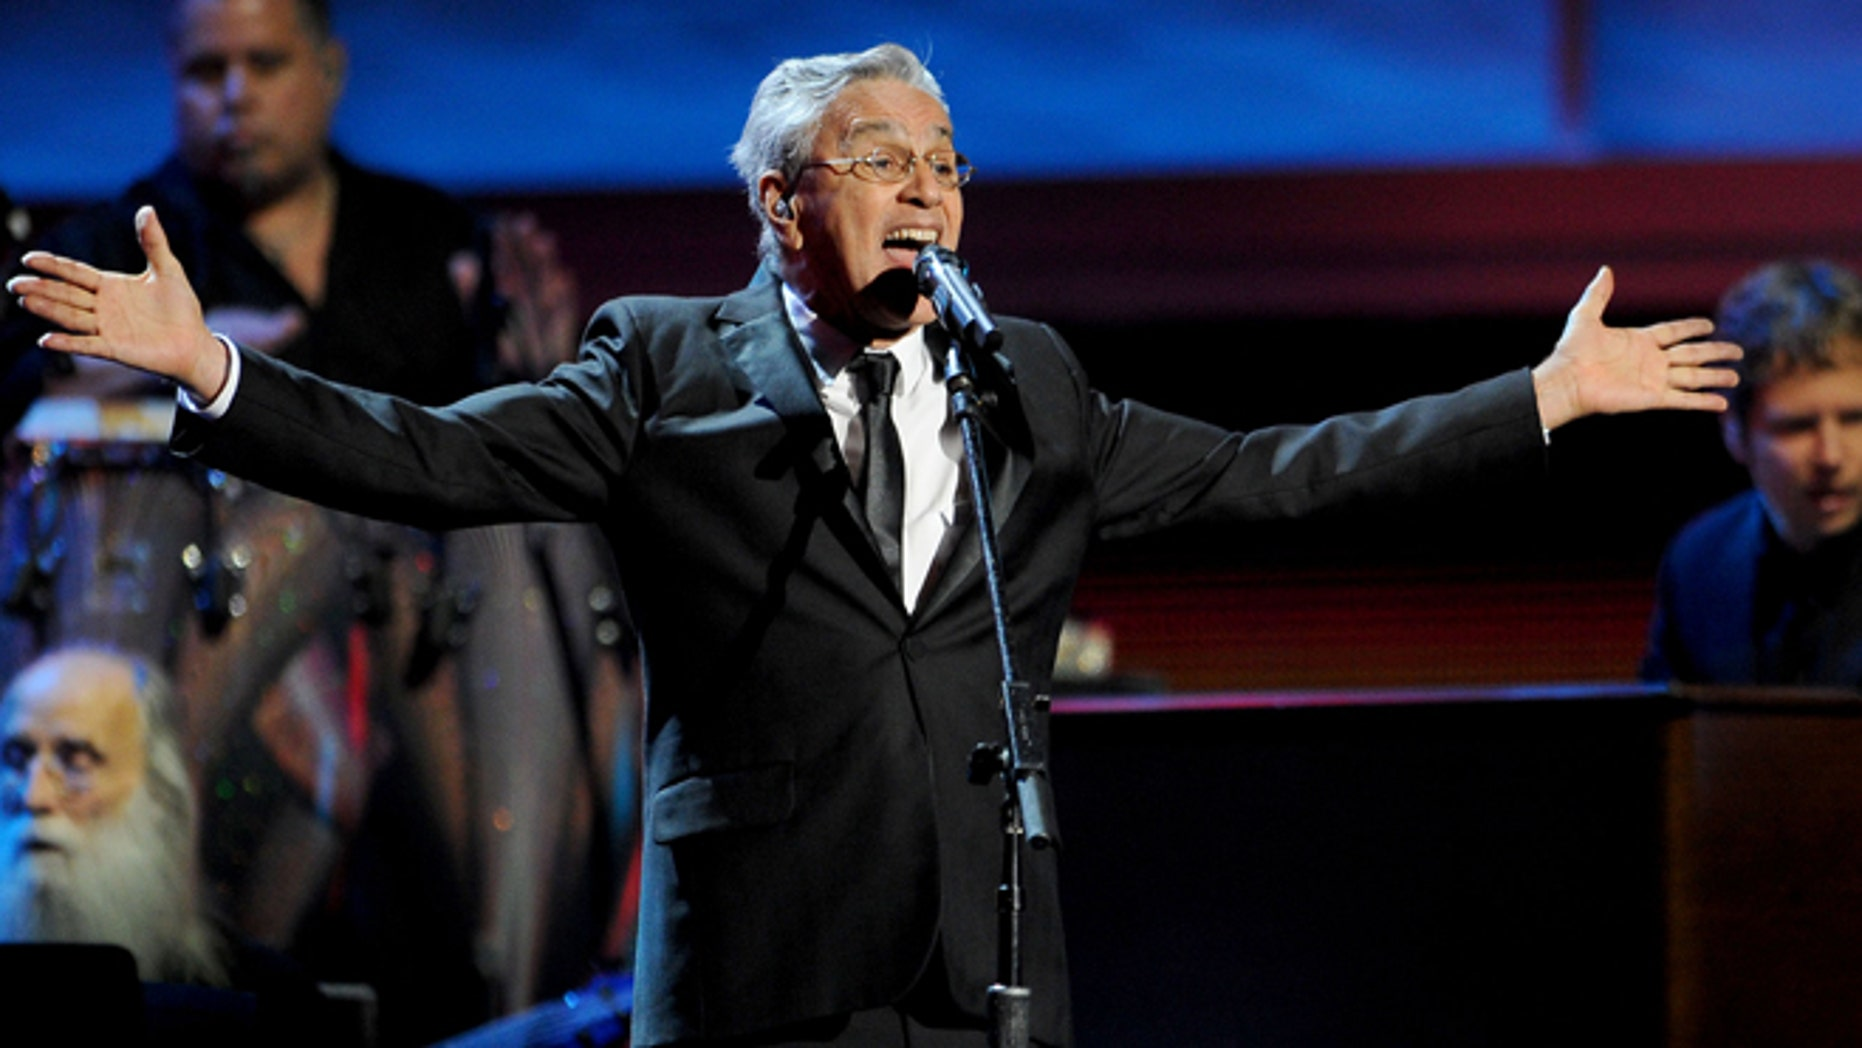 FILE - In this Nov. 15, 2012, file photo, Caetano Veloso performs at the 13th Annual Latin Grammy Awards at Mandalay Bay, in Las Vegas. Veloso is taking a shellacking from the press and his fan base alike, who say heâs endorsing censorship by leading the defense of a wide-ranging law that allows Brazilians to block or pull from the shelves any biographical work about them that was created without their consent. (AP Photo/Invision/Al Powers, File)